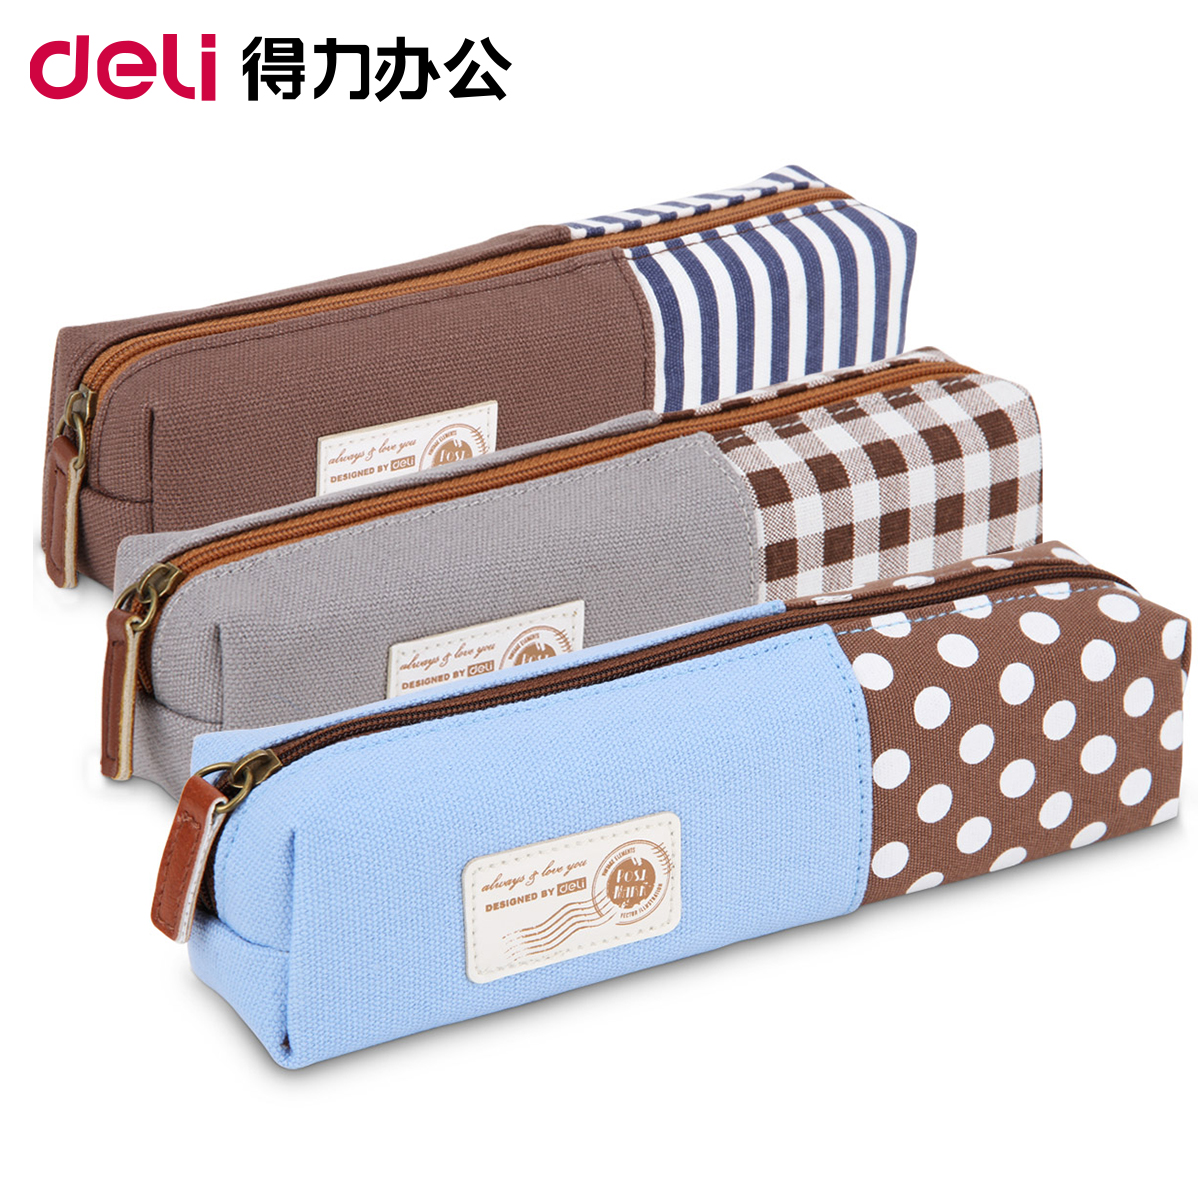 Deli deli little girls 31726 korean small fresh creative pencil cute pencil simple pencil student pencil bag